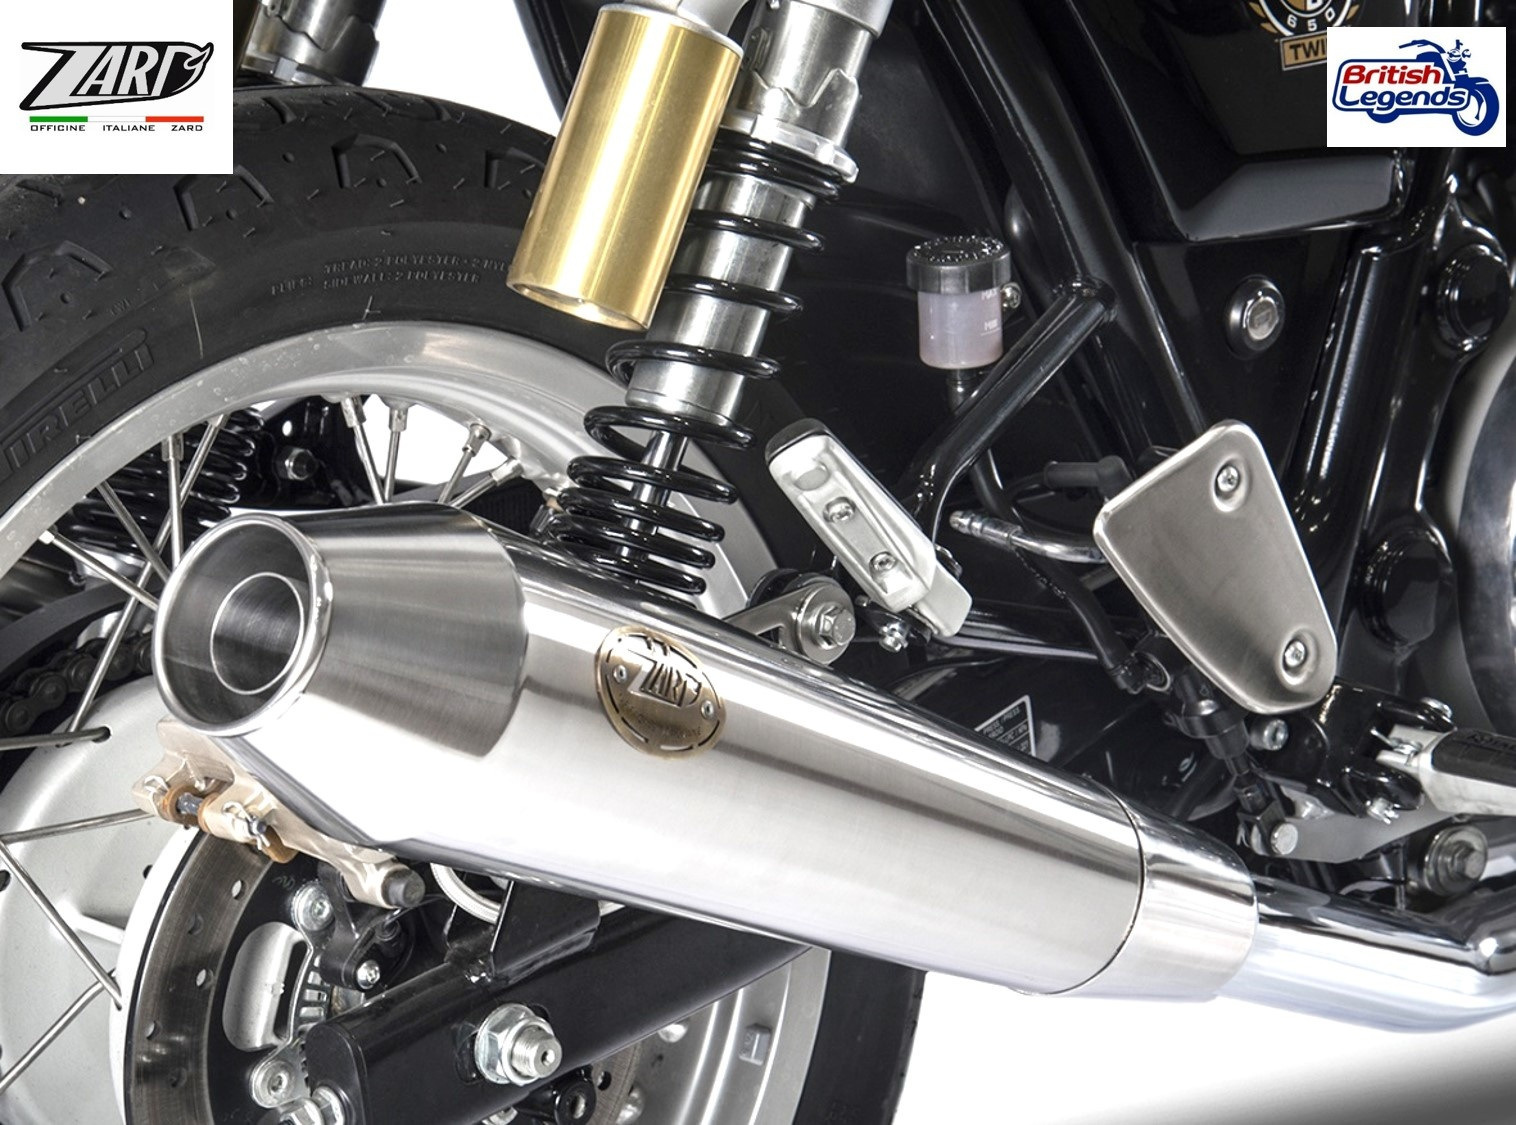 Zard Slip On Silencers For Royal Enfield Interceptor Continental 650 Triumph Parts